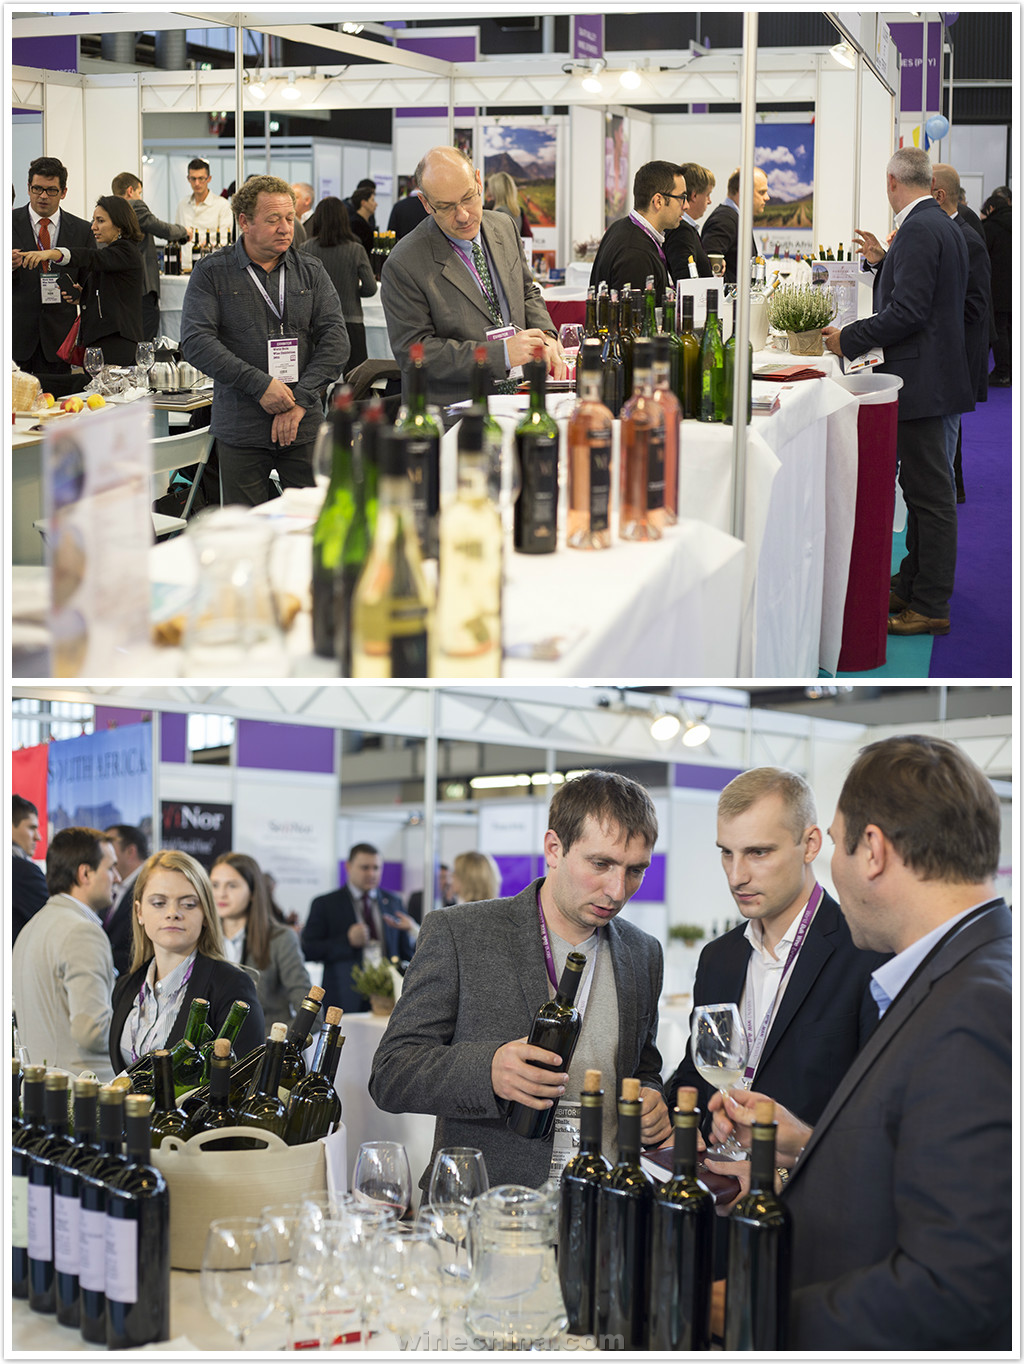 The 8th World Bulk Wine Exhibition